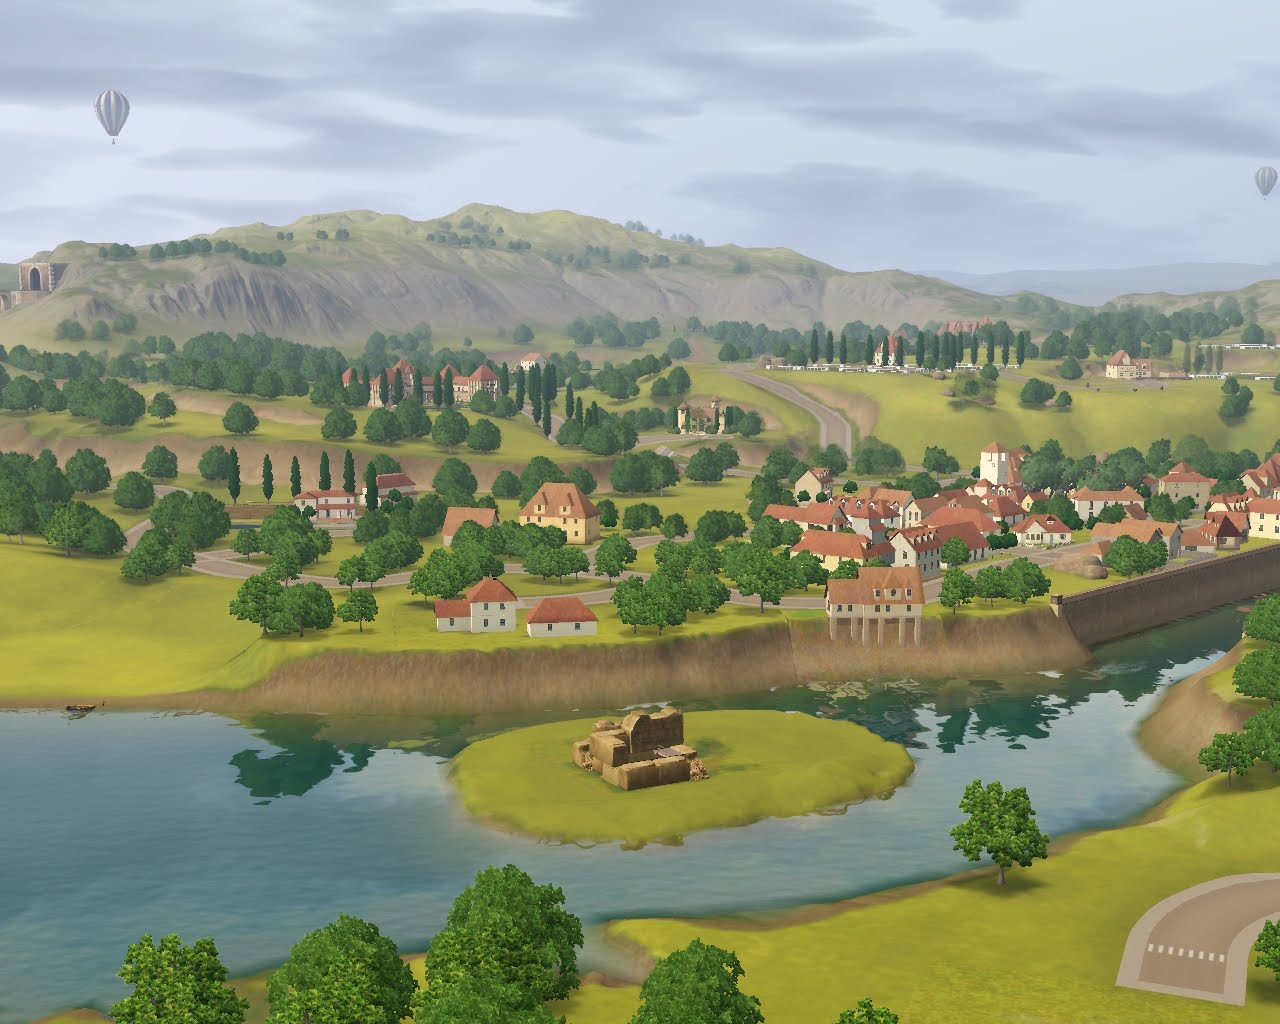 Sims 3 World free download